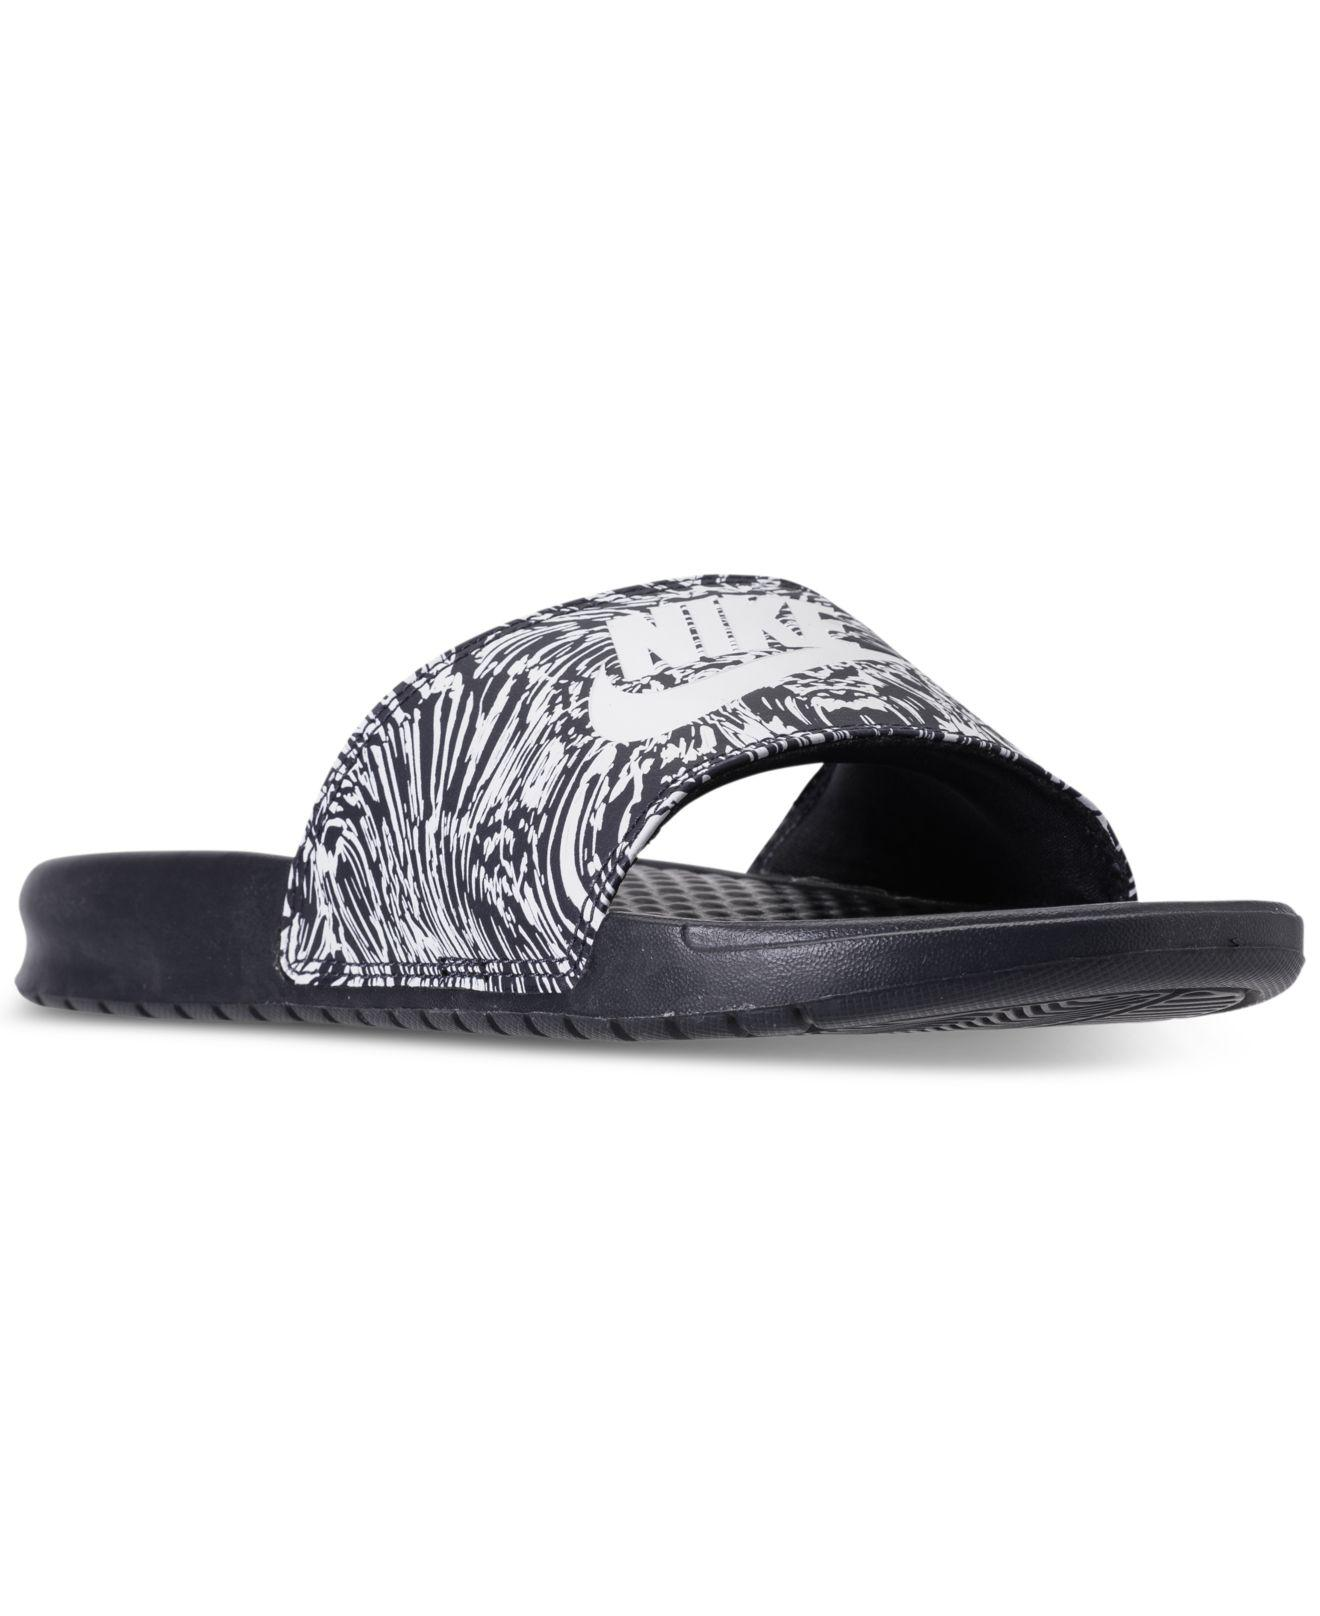 0046a8c60eb742 Lyst - Nike Benassi Jdi Print Slide Sandals From Finish Line in Blue ...